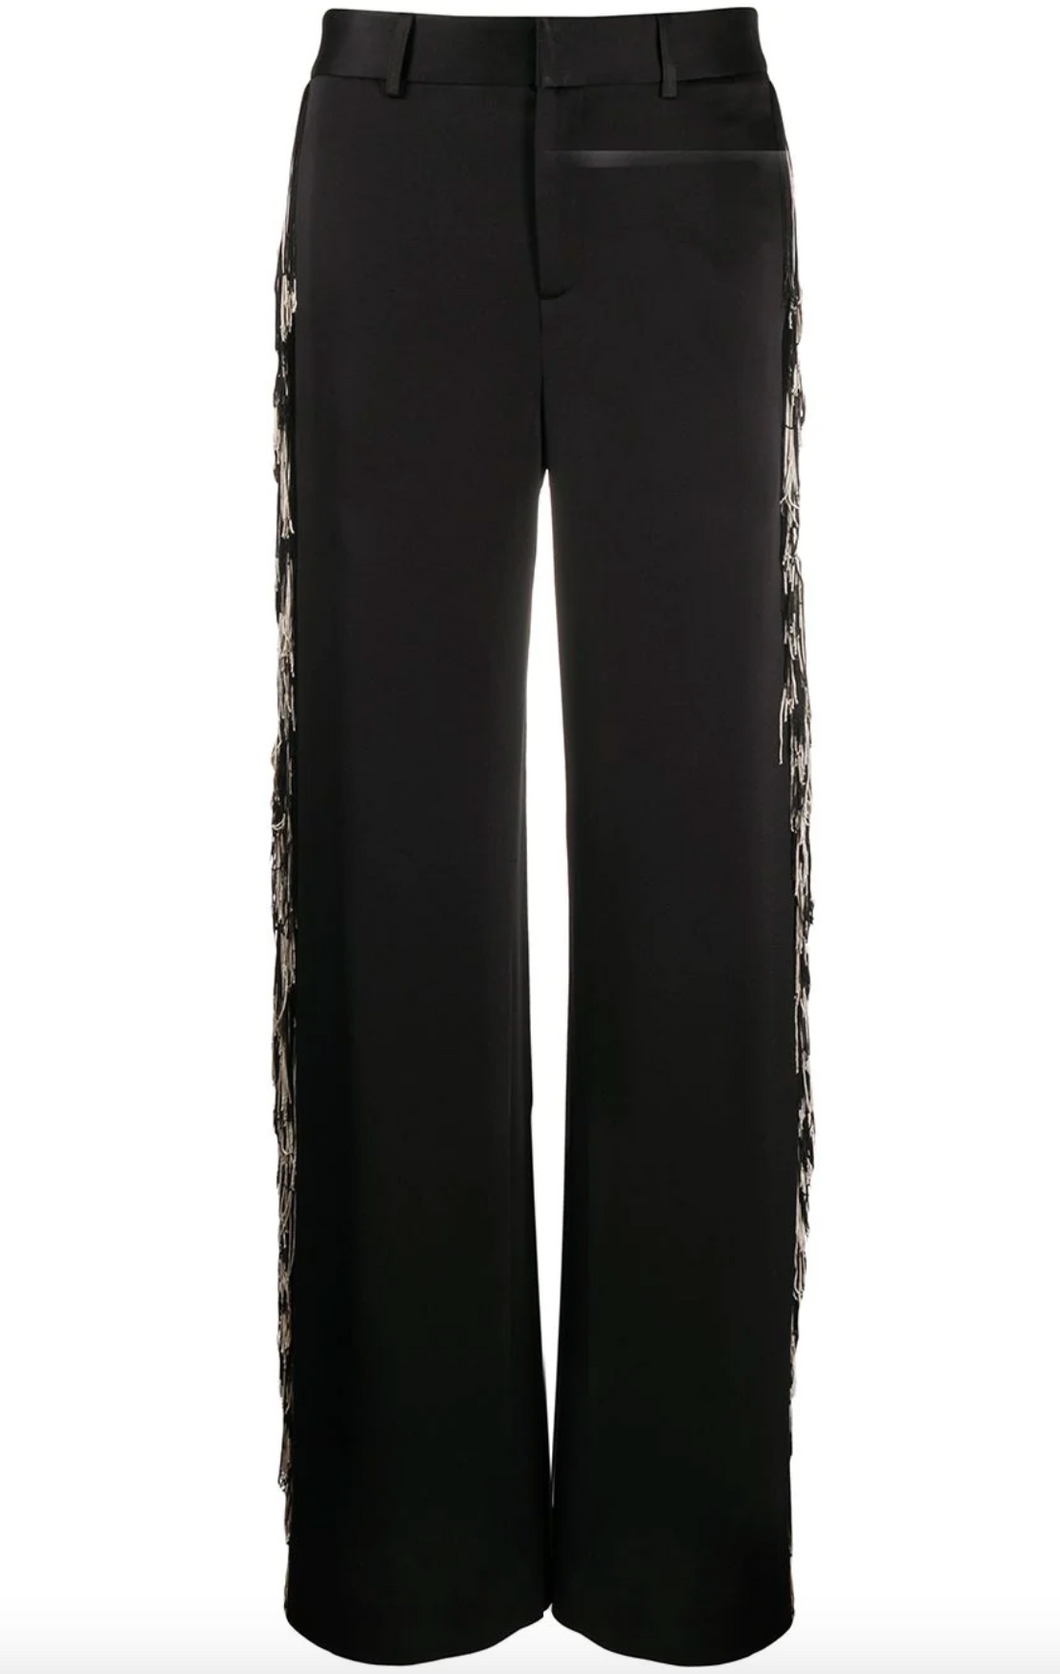 Fringed Trousers - Black/Cream